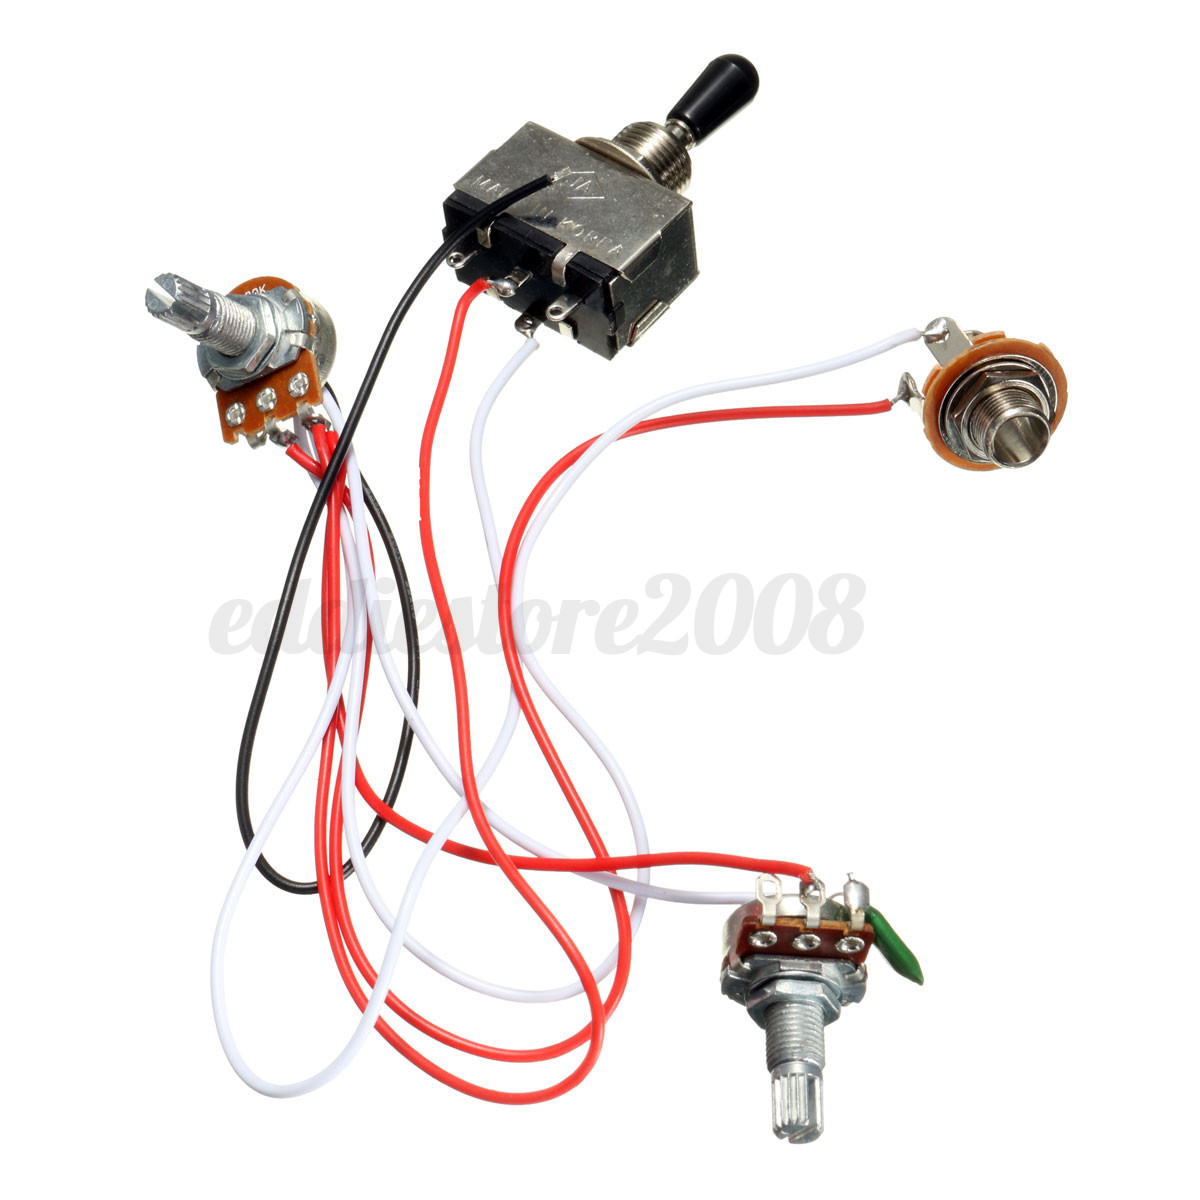 hight resolution of 2 of 9 electric guitar 3 way toggle switch wiring harness kit 1 volume 1 tone